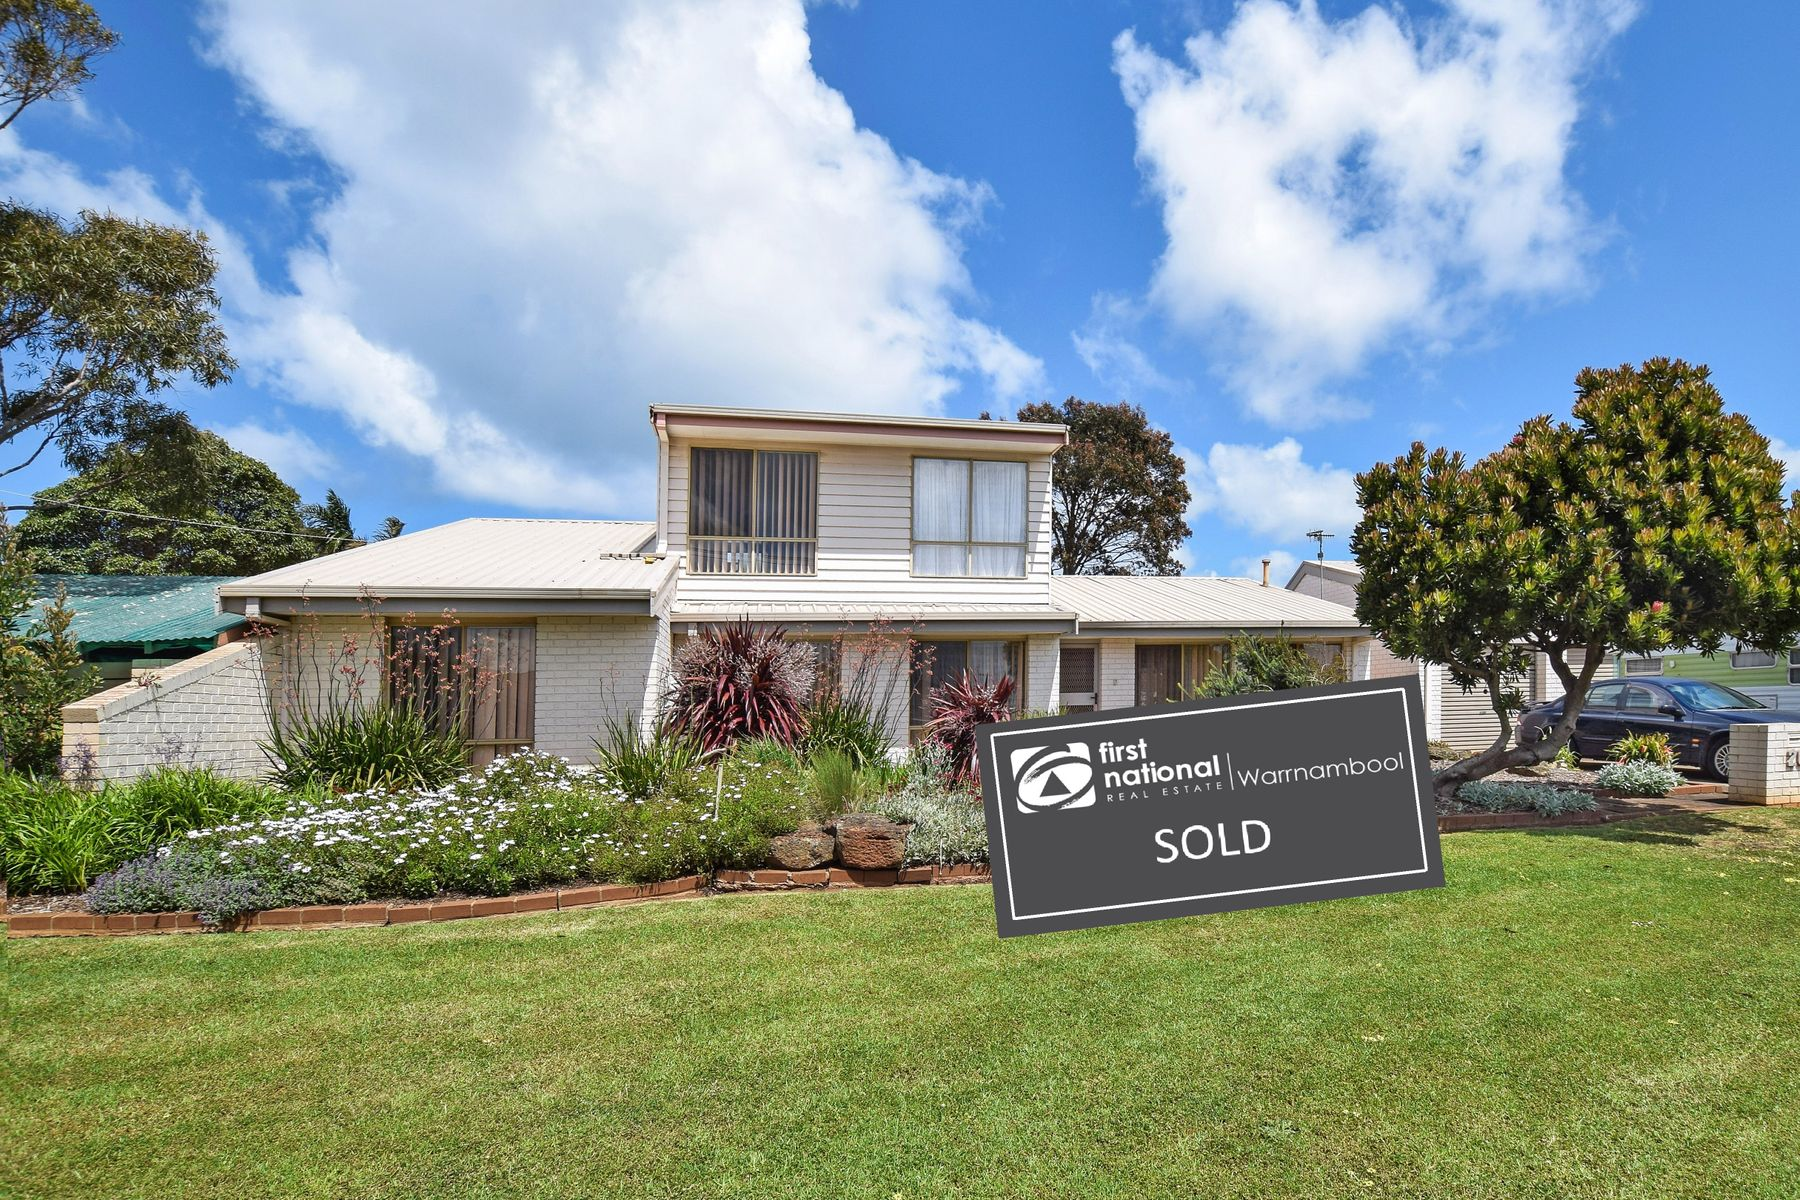 20 Mannerim Avenue, Warrnambool, VIC 3280